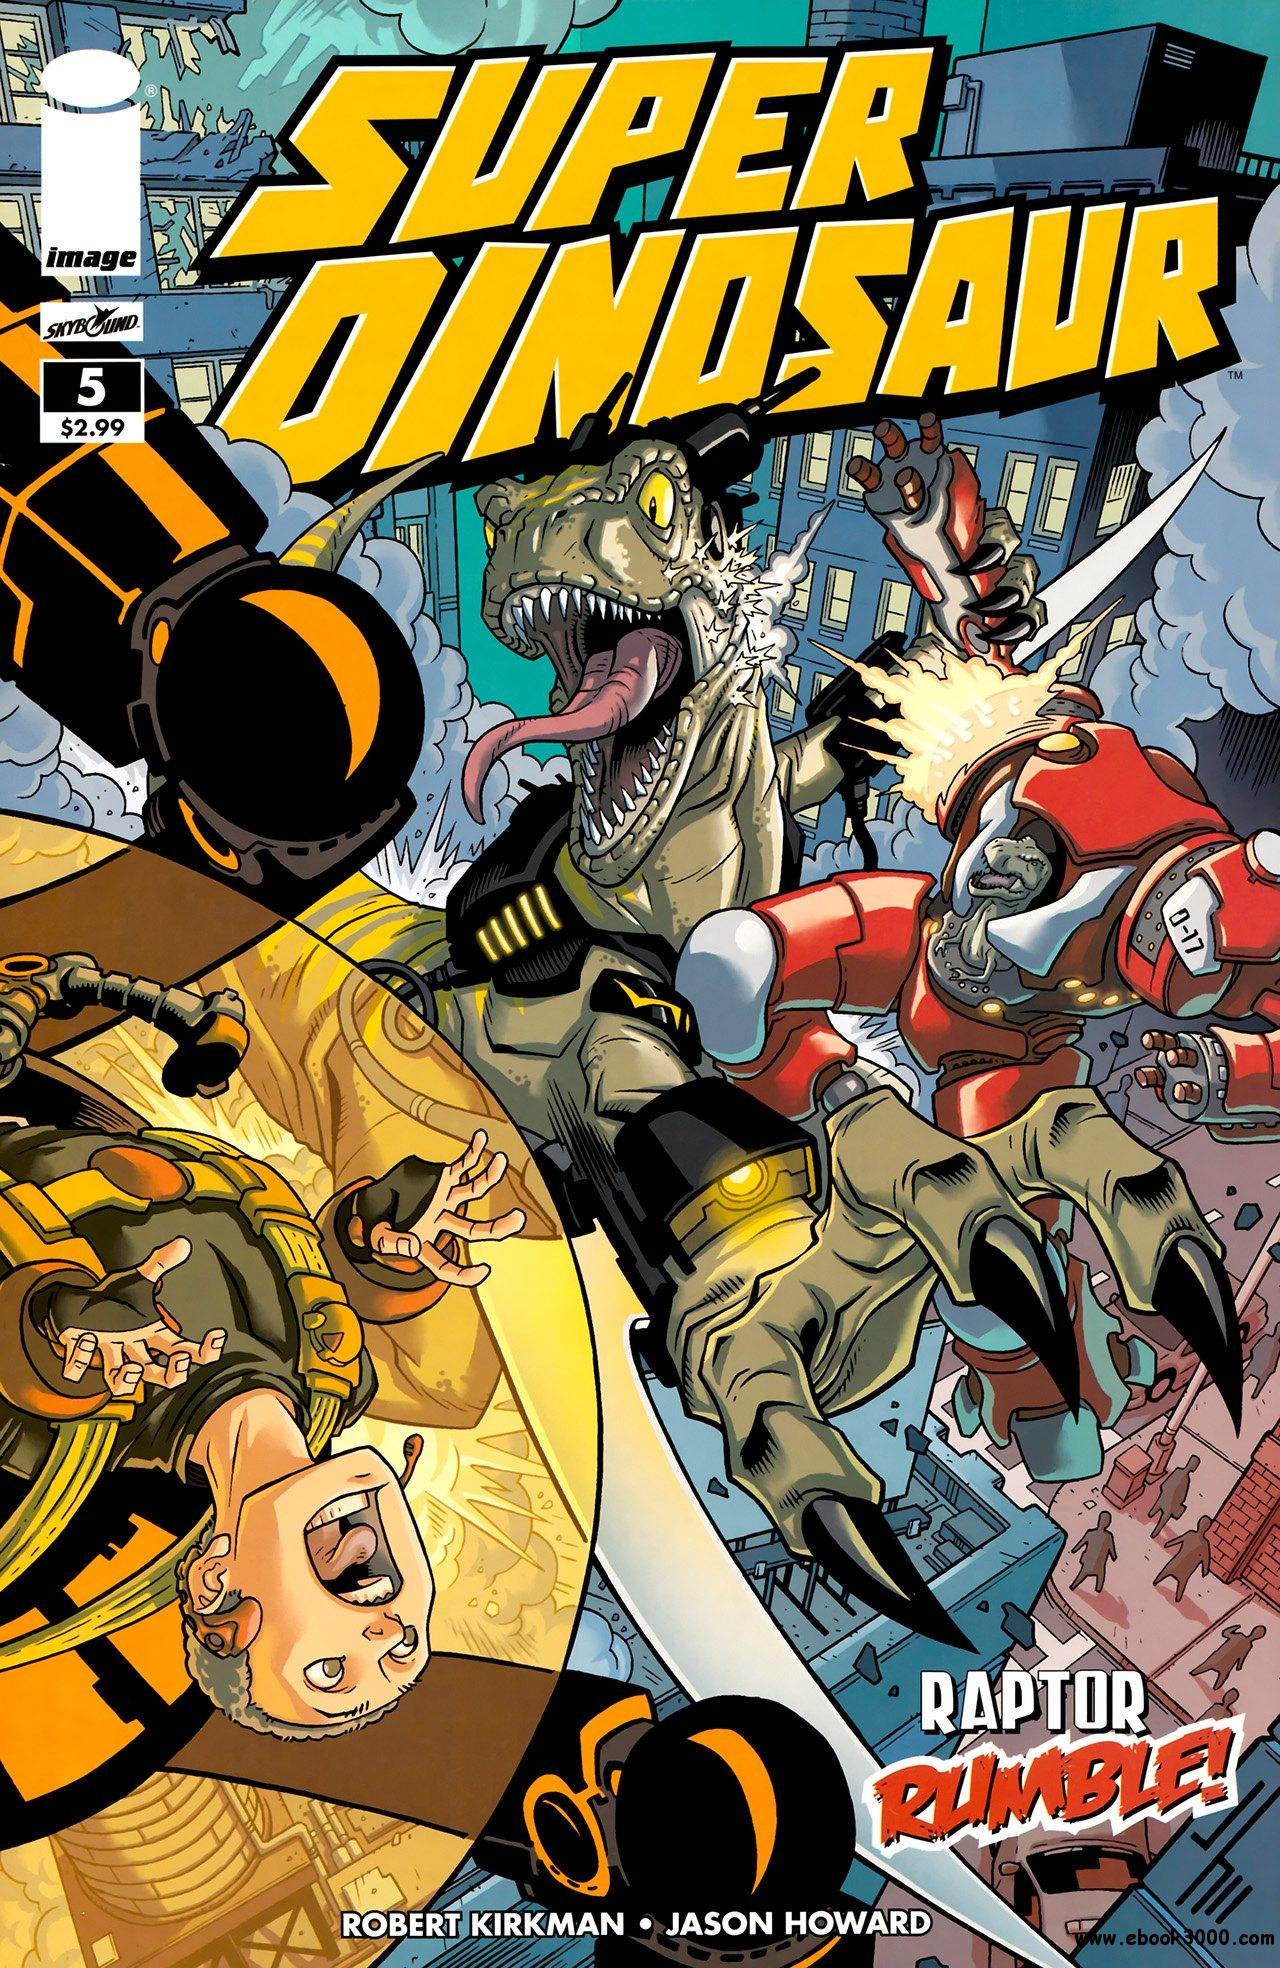 Super Dinosaur #5 (2011) free download